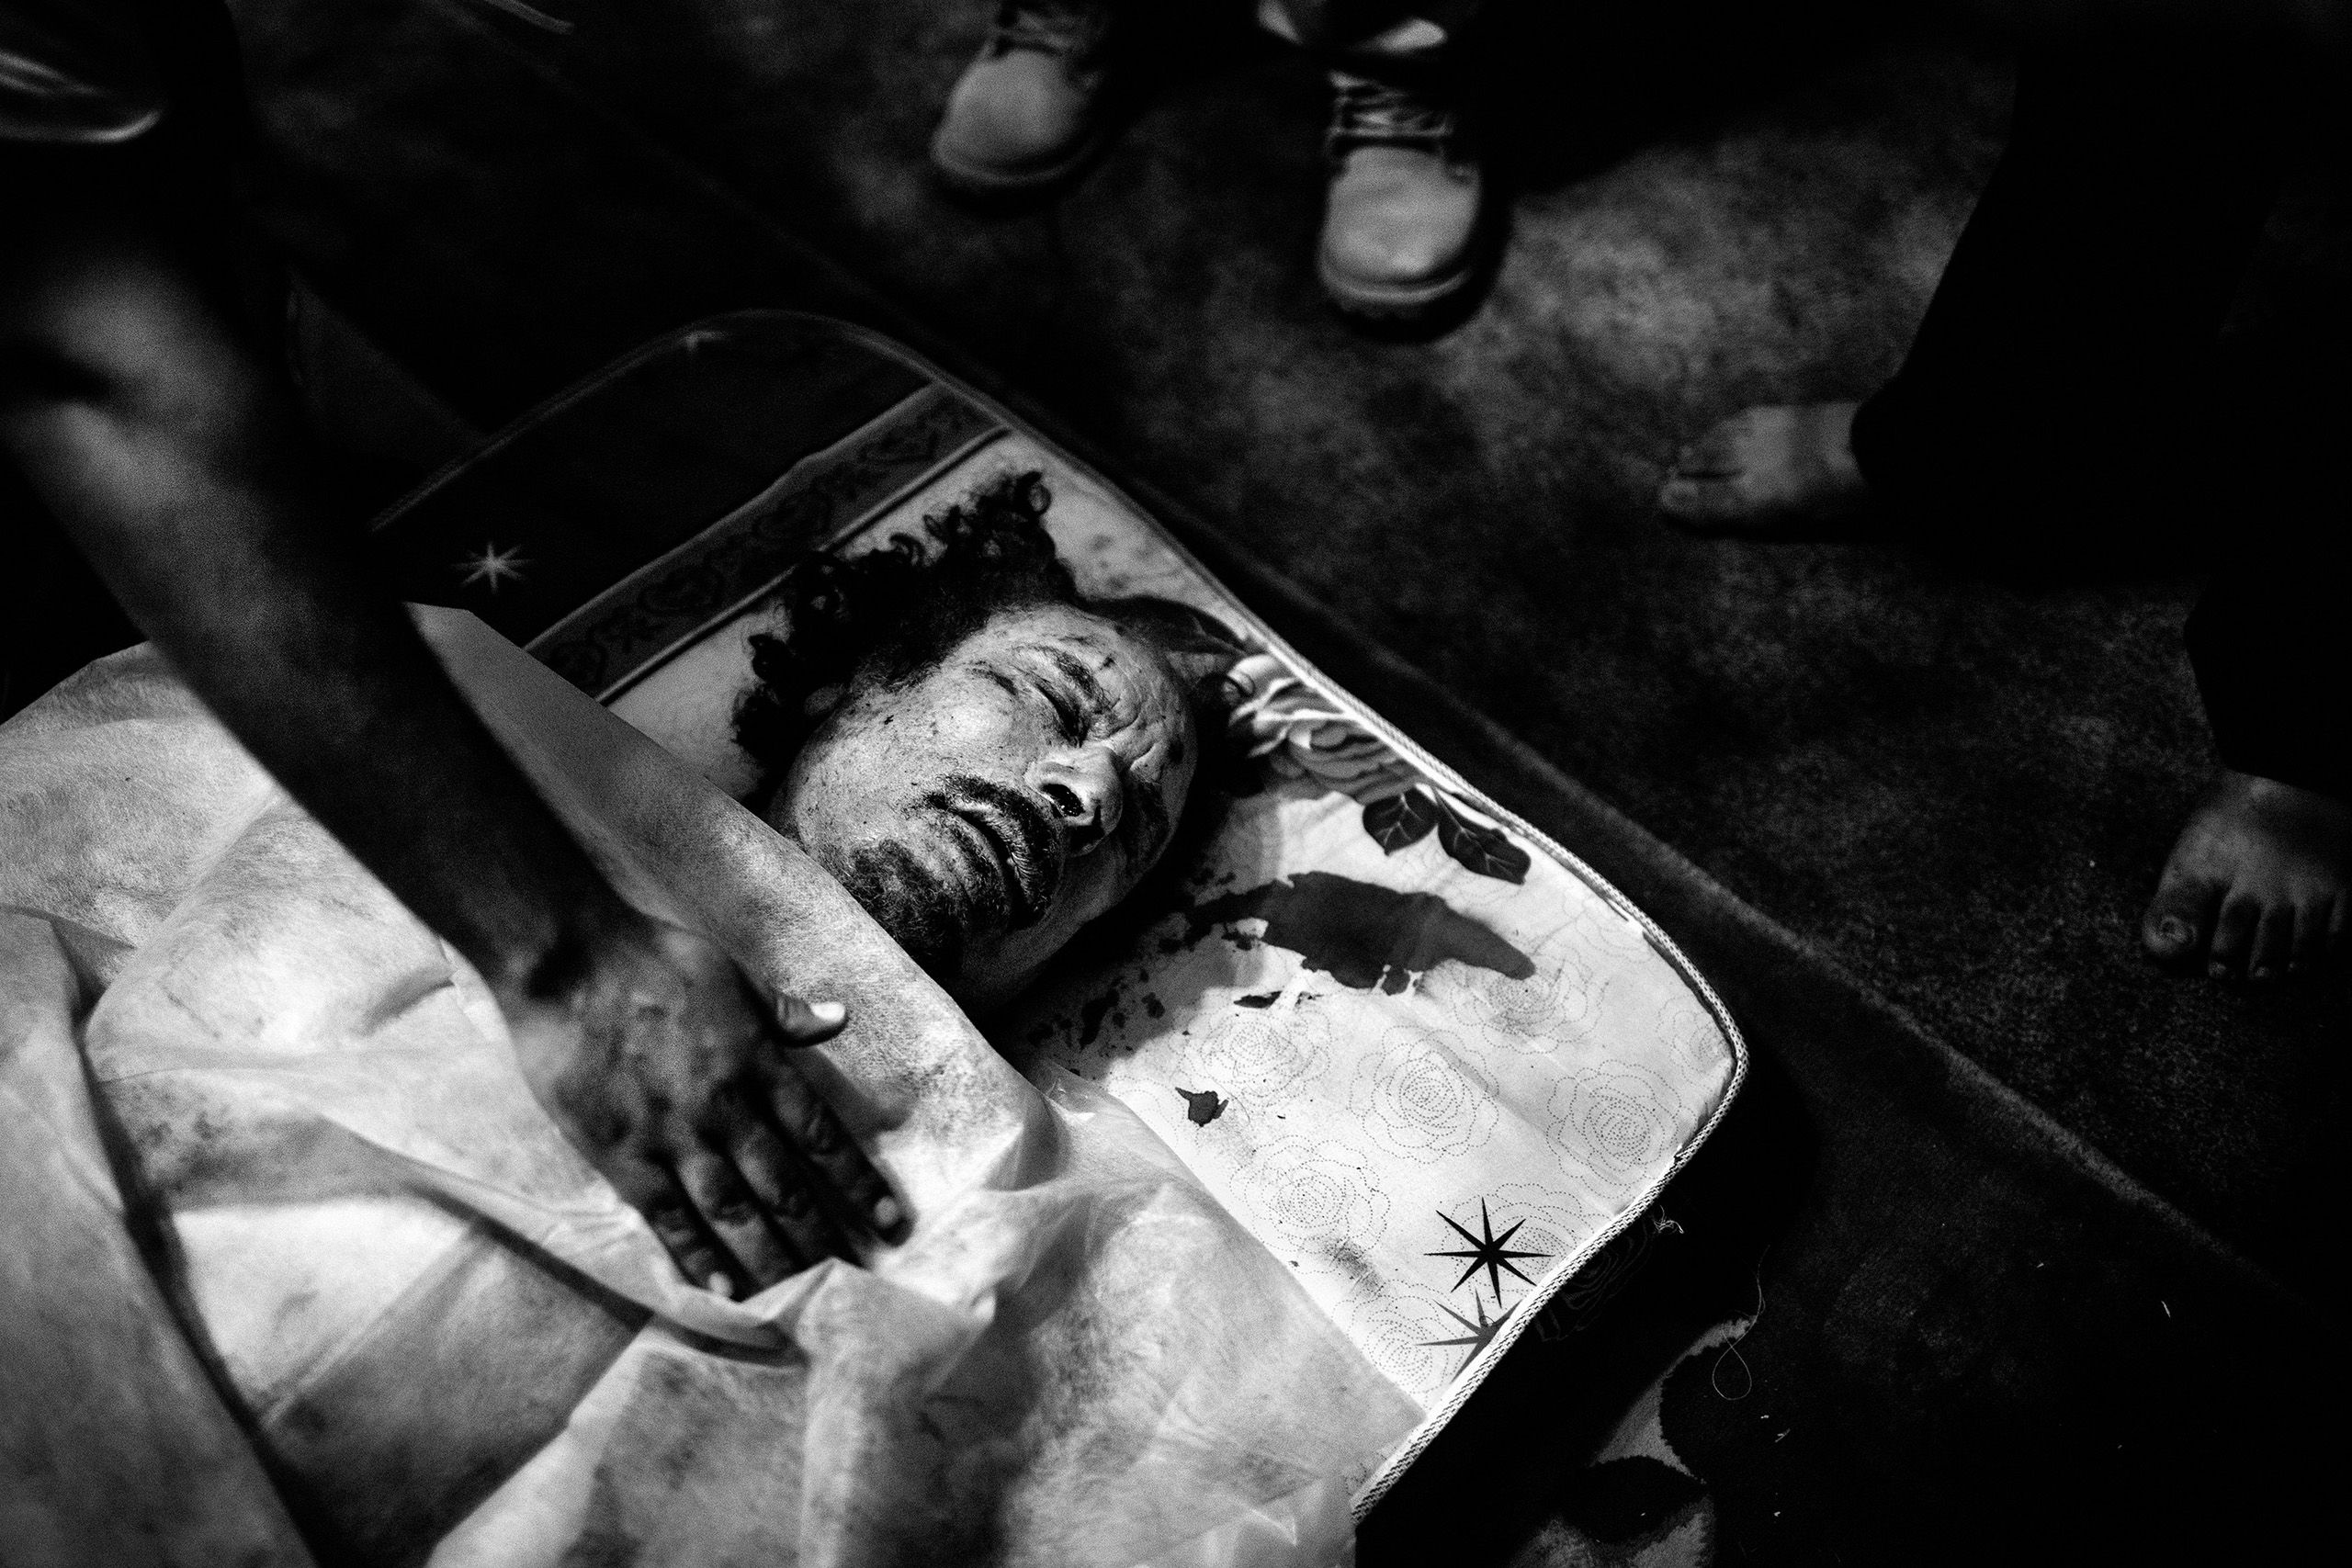 The corpse of Libyan leader Muammar Gaddafi in a rebel's home in Misurata, Libya,  Oct. 20, 2011, the day he was killed.